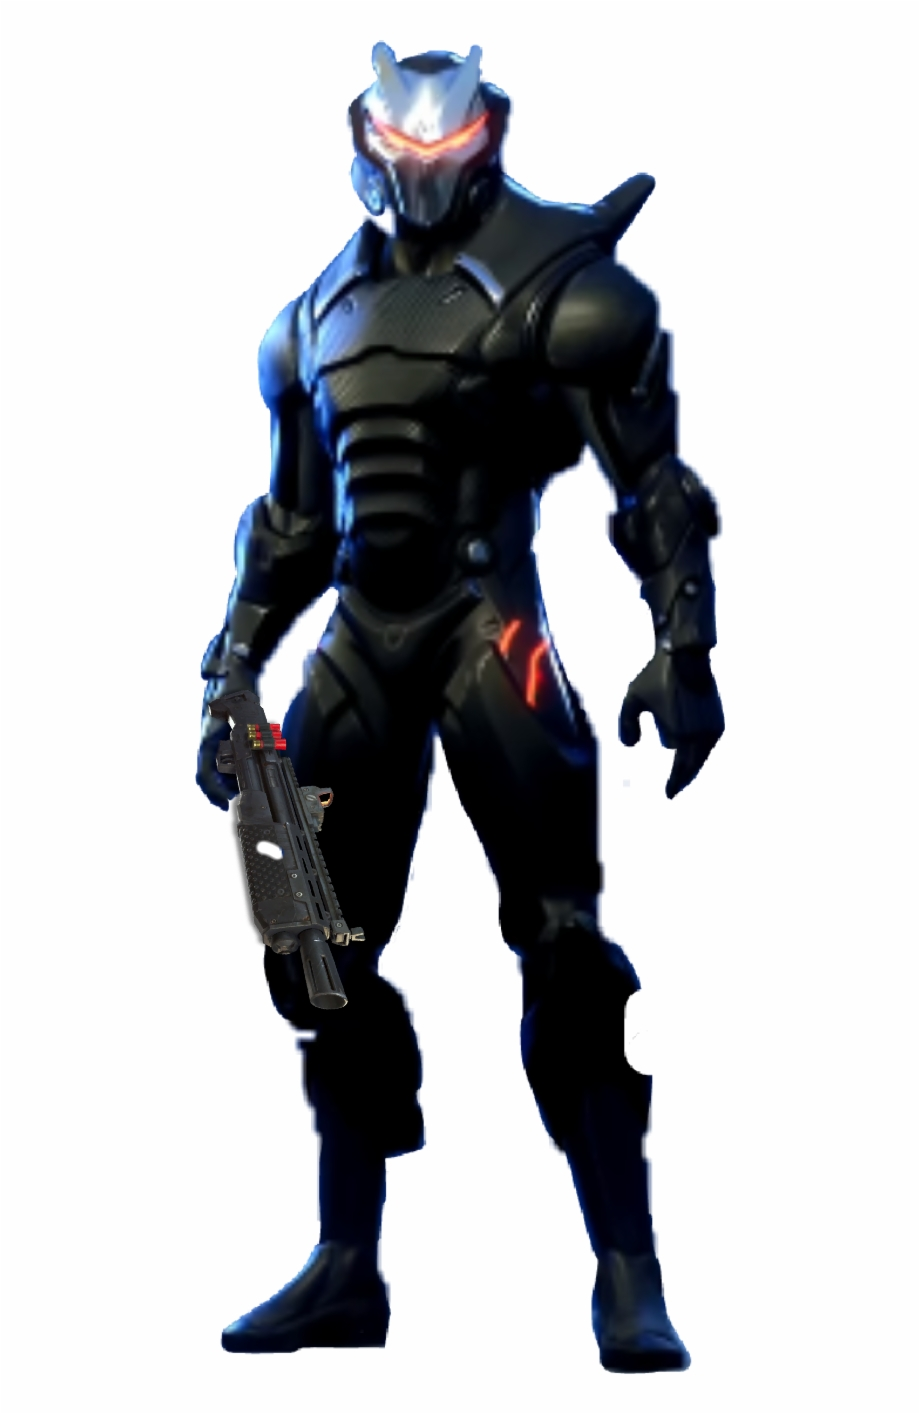 Fortnite omega clipart. Transparent background free png